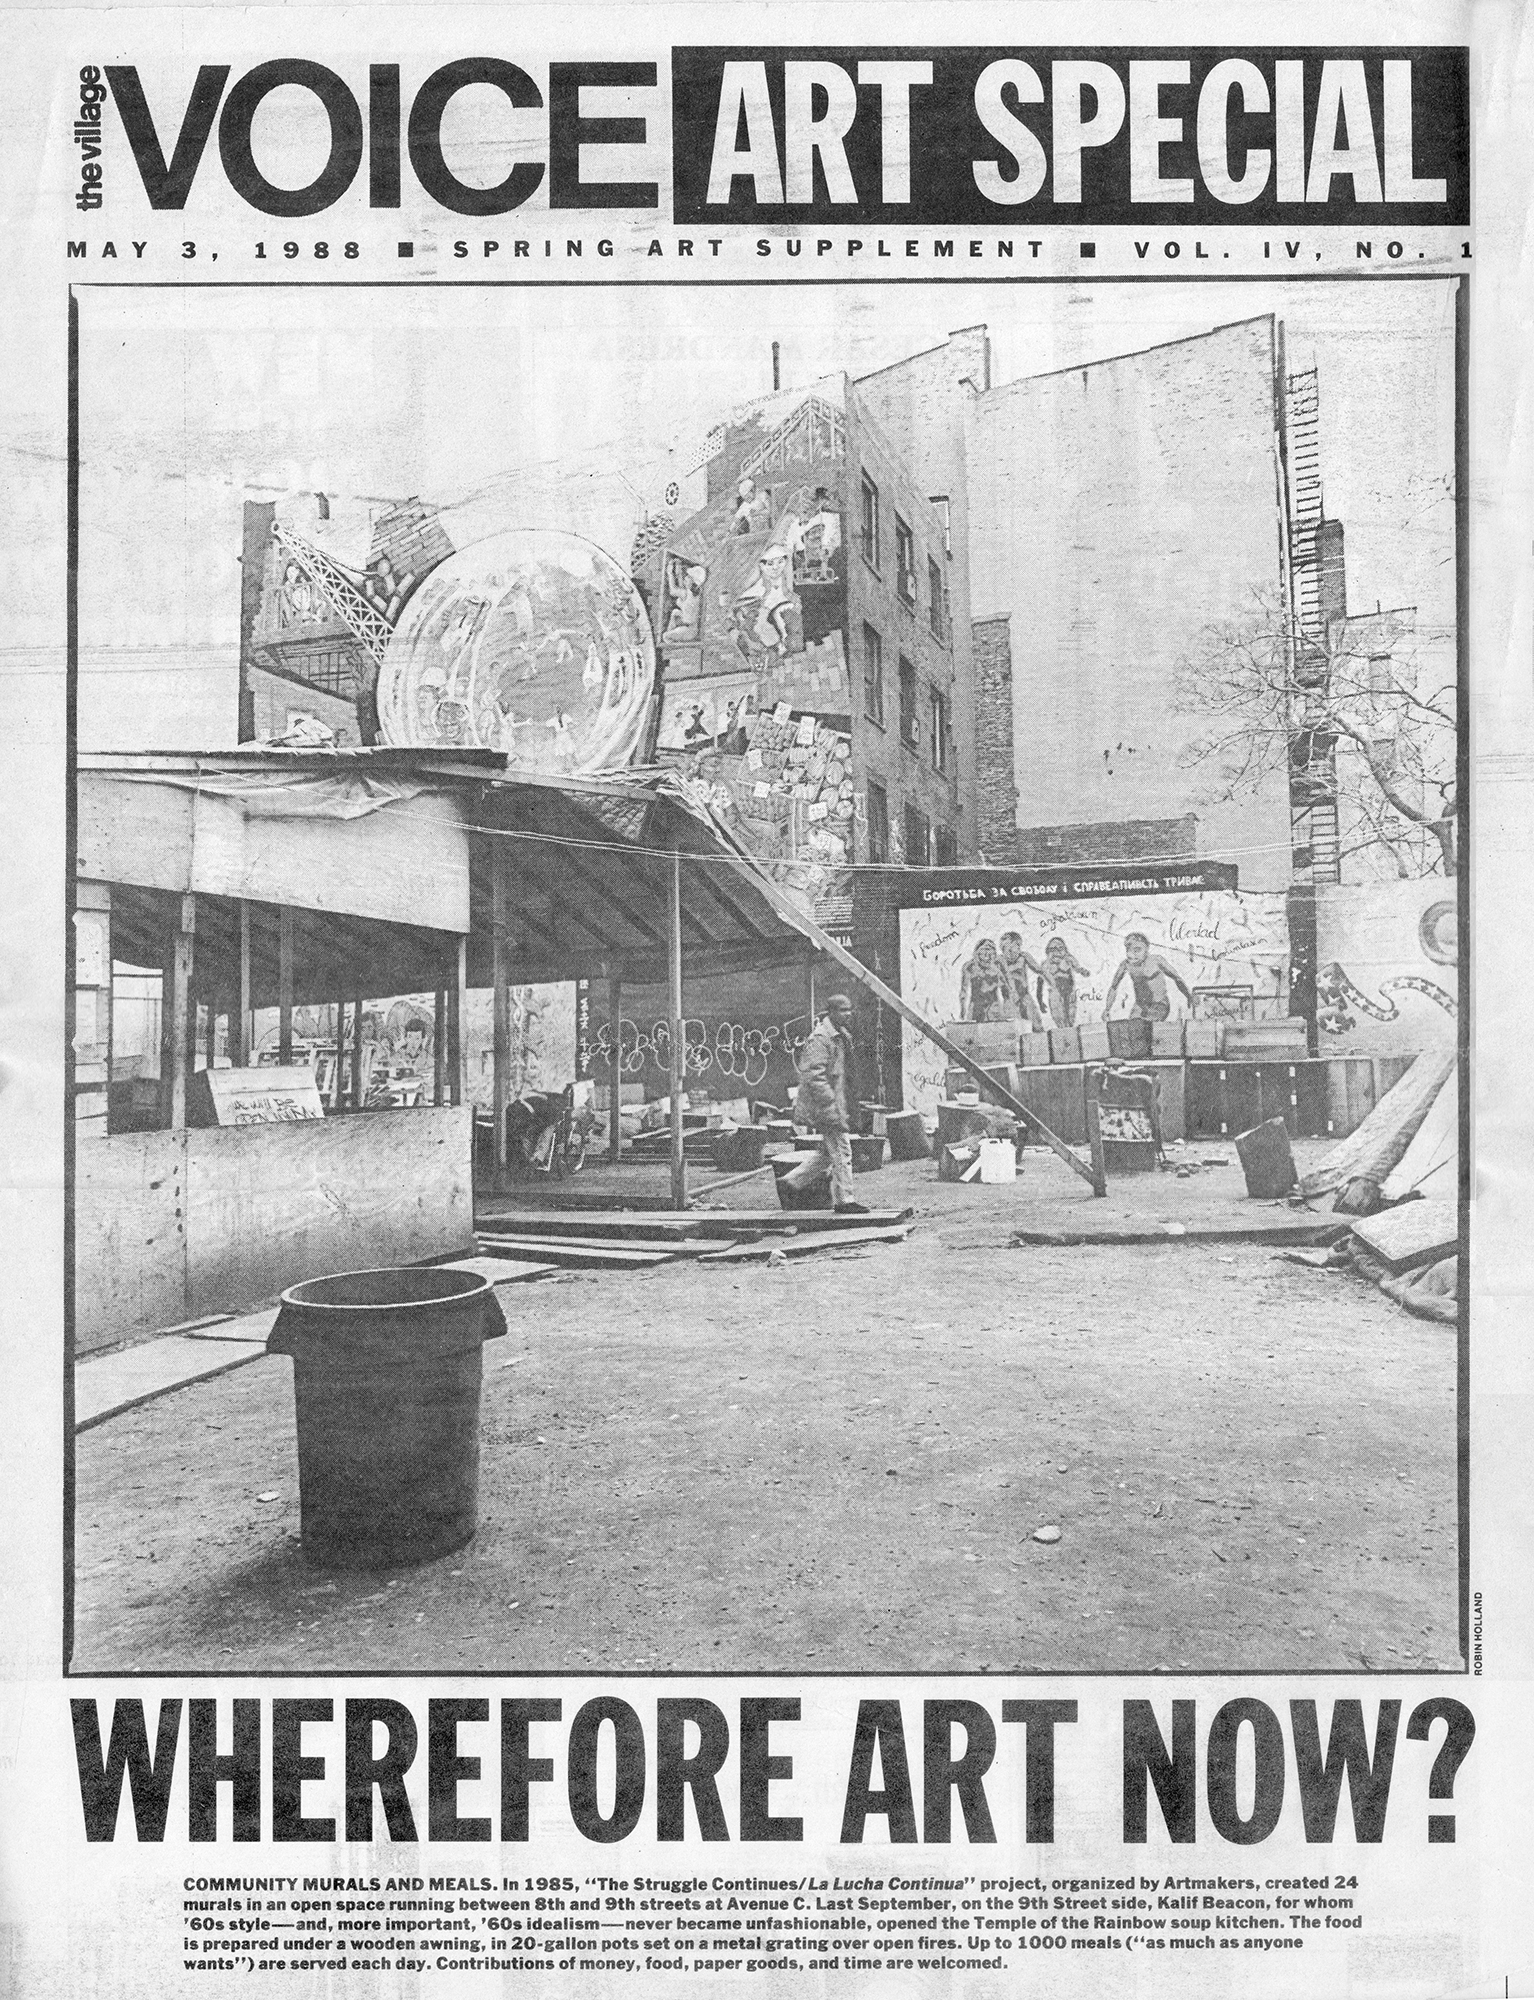 The Village Voice / Art Special , May 3, 1988, cover   Courtesy of La Plaza Cultural Archives